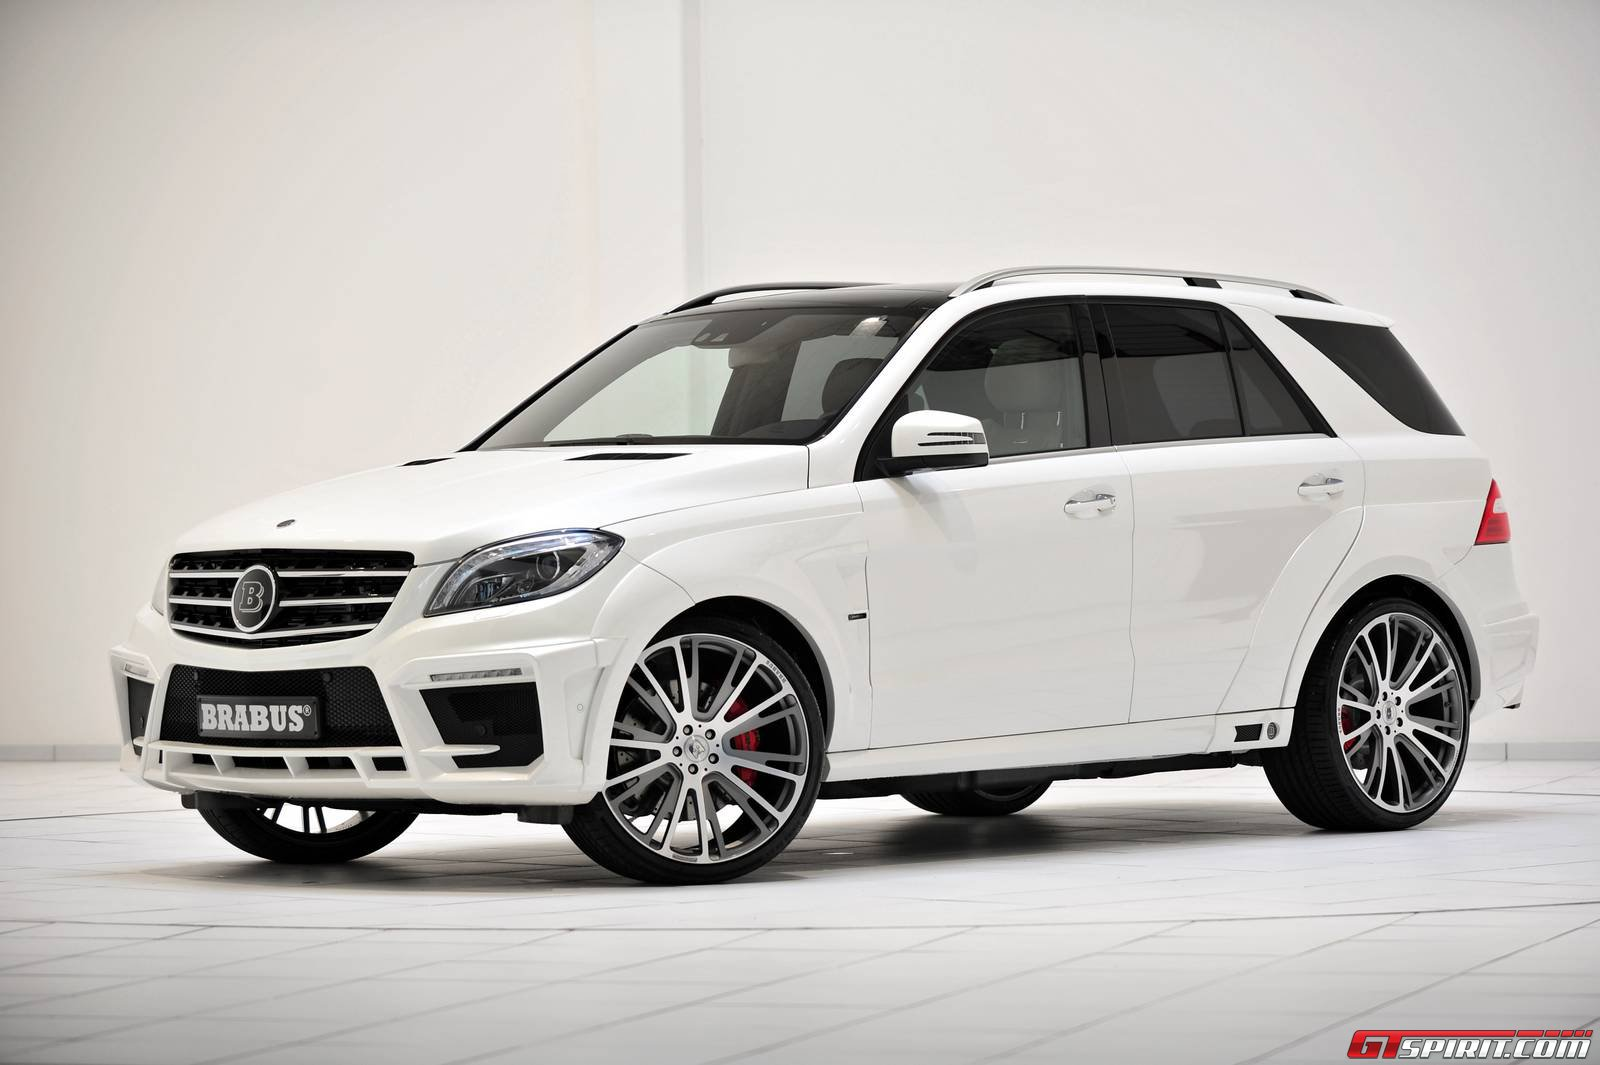 Mercedes 350 Suv >> Official: Brabus B63S-700 Widestar for Mercedes-Benz ML 63 AMG and GL 63 AMG - GTspirit